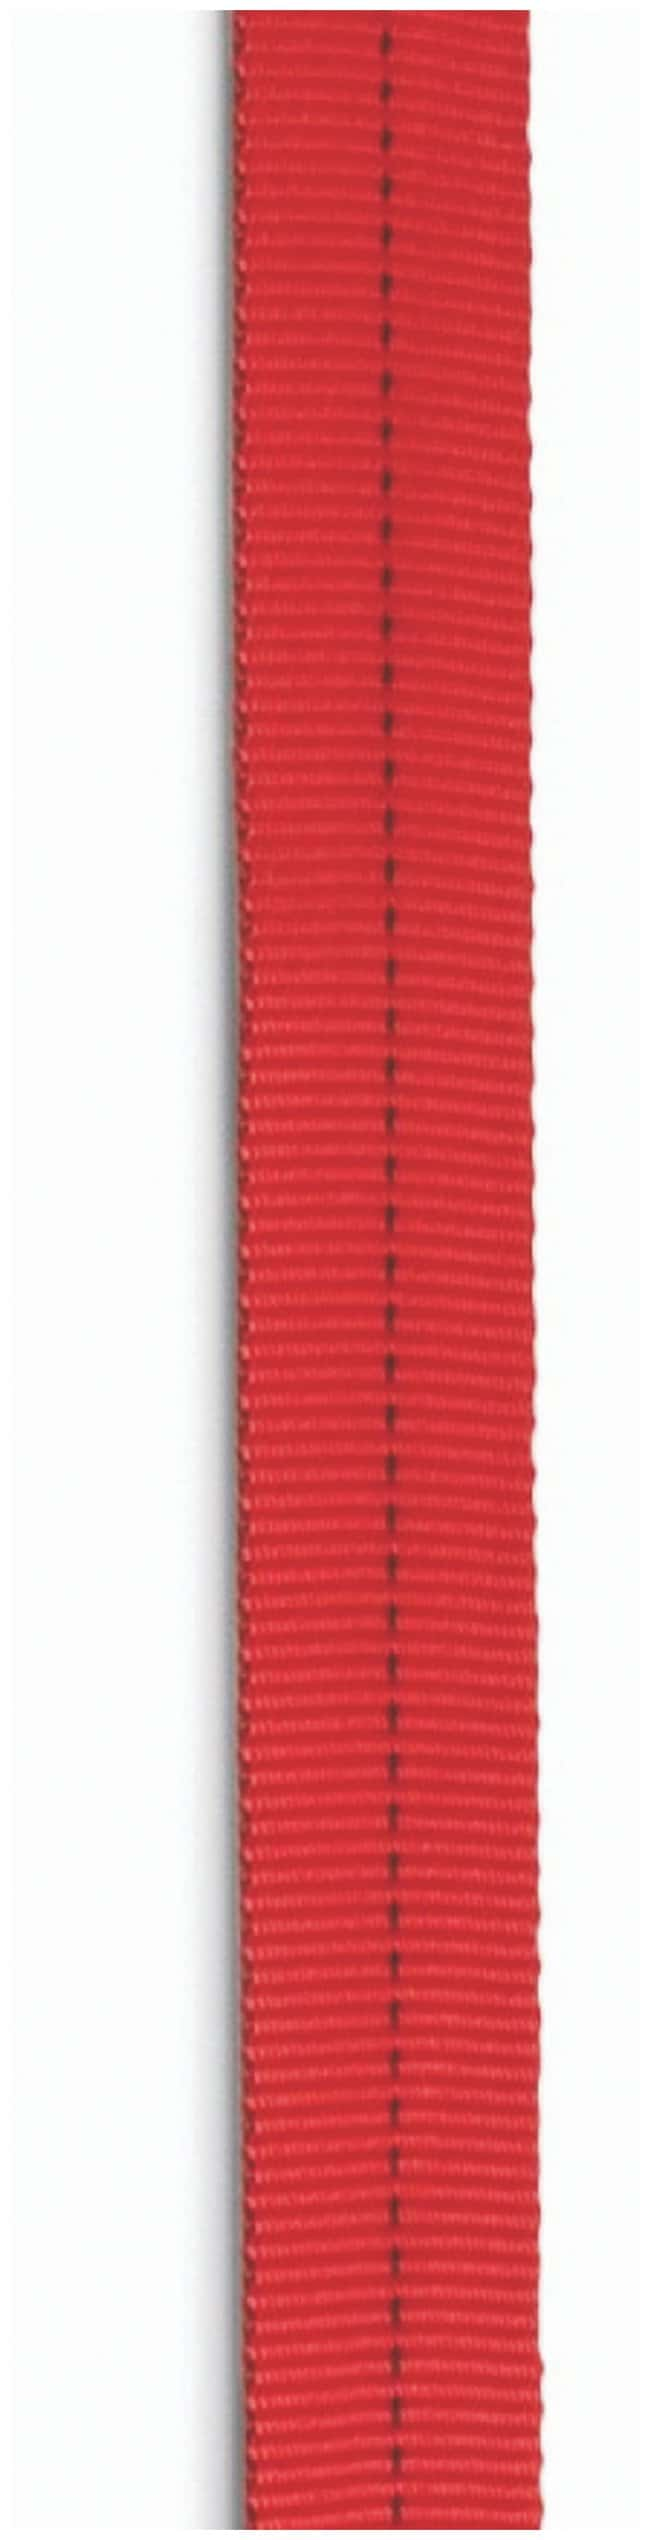 CMC Rescue 2 in. Tubular Nylon Webbing Red:Gloves, Glasses and Safety